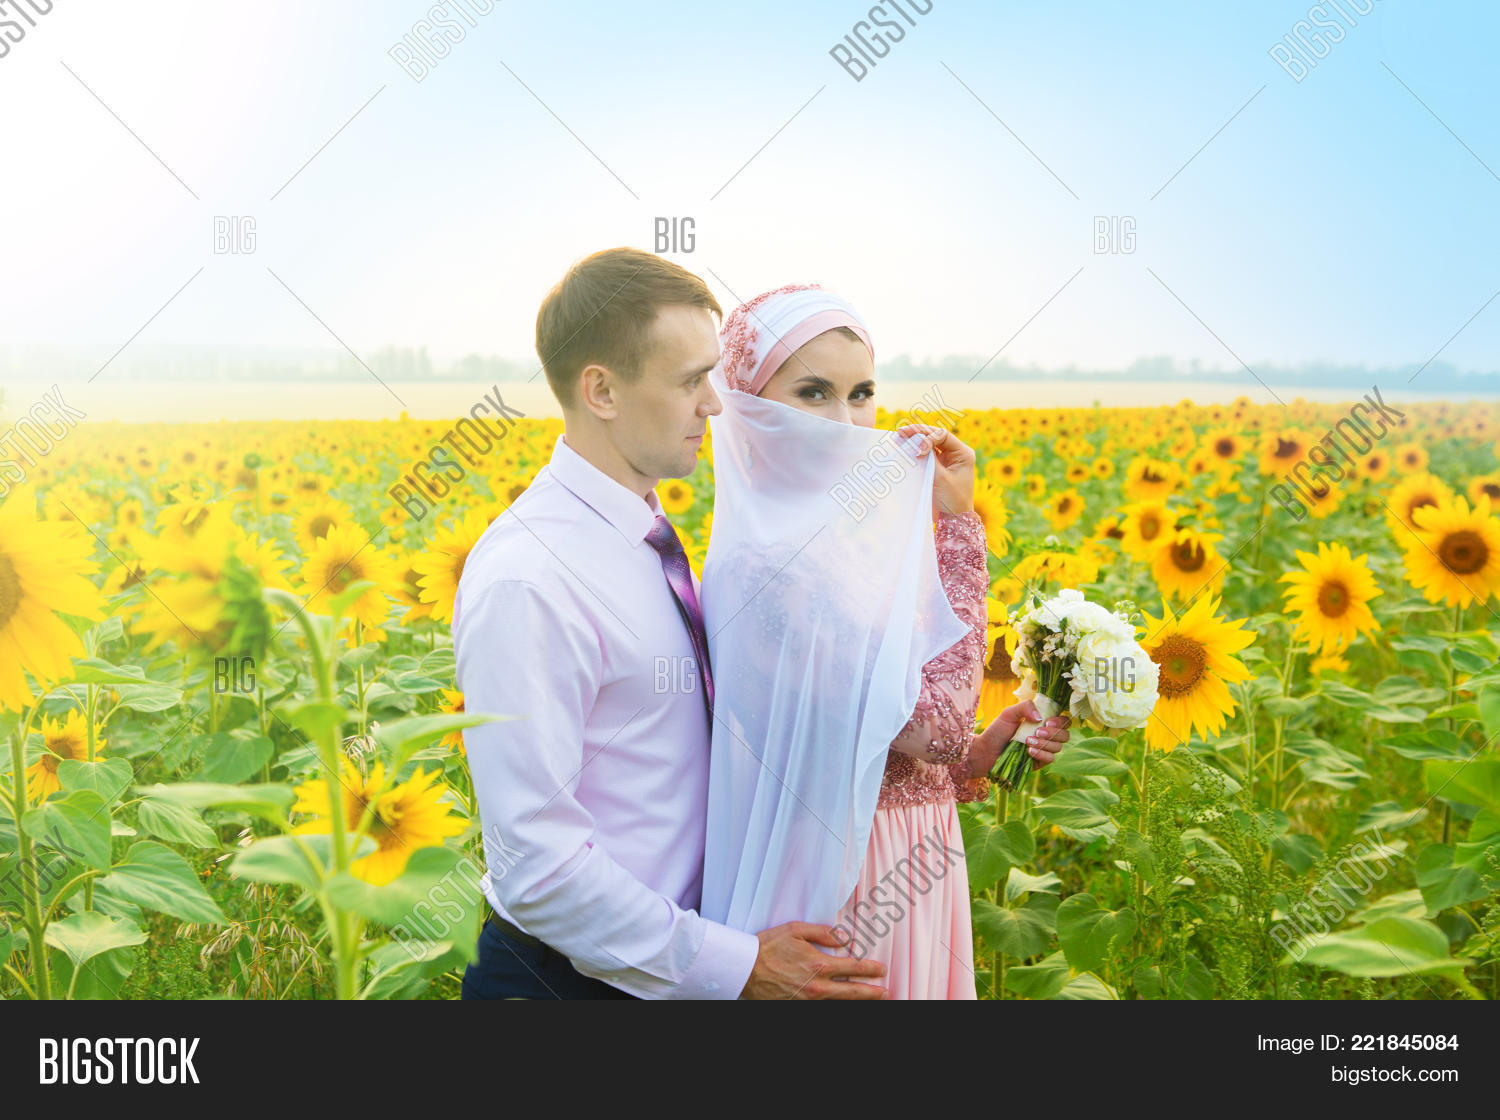 Smiling Young Islamic Image & Photo (Free Trial) | Bigstock